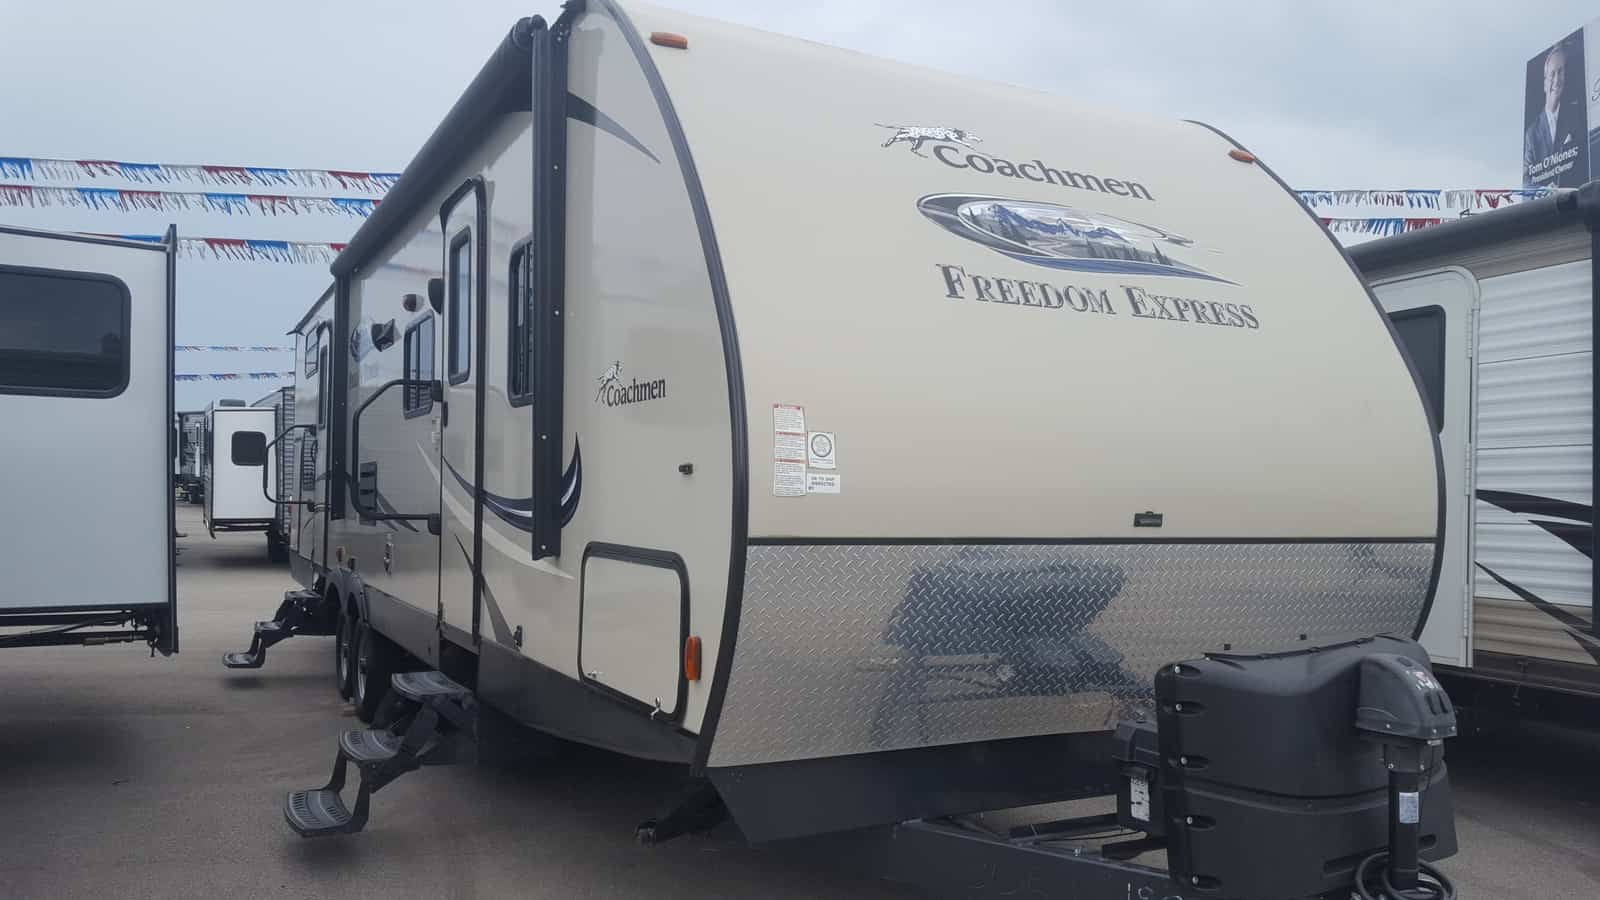 USED 2016 Coachmen FREEDOM EXPRESS 31SE - American RV